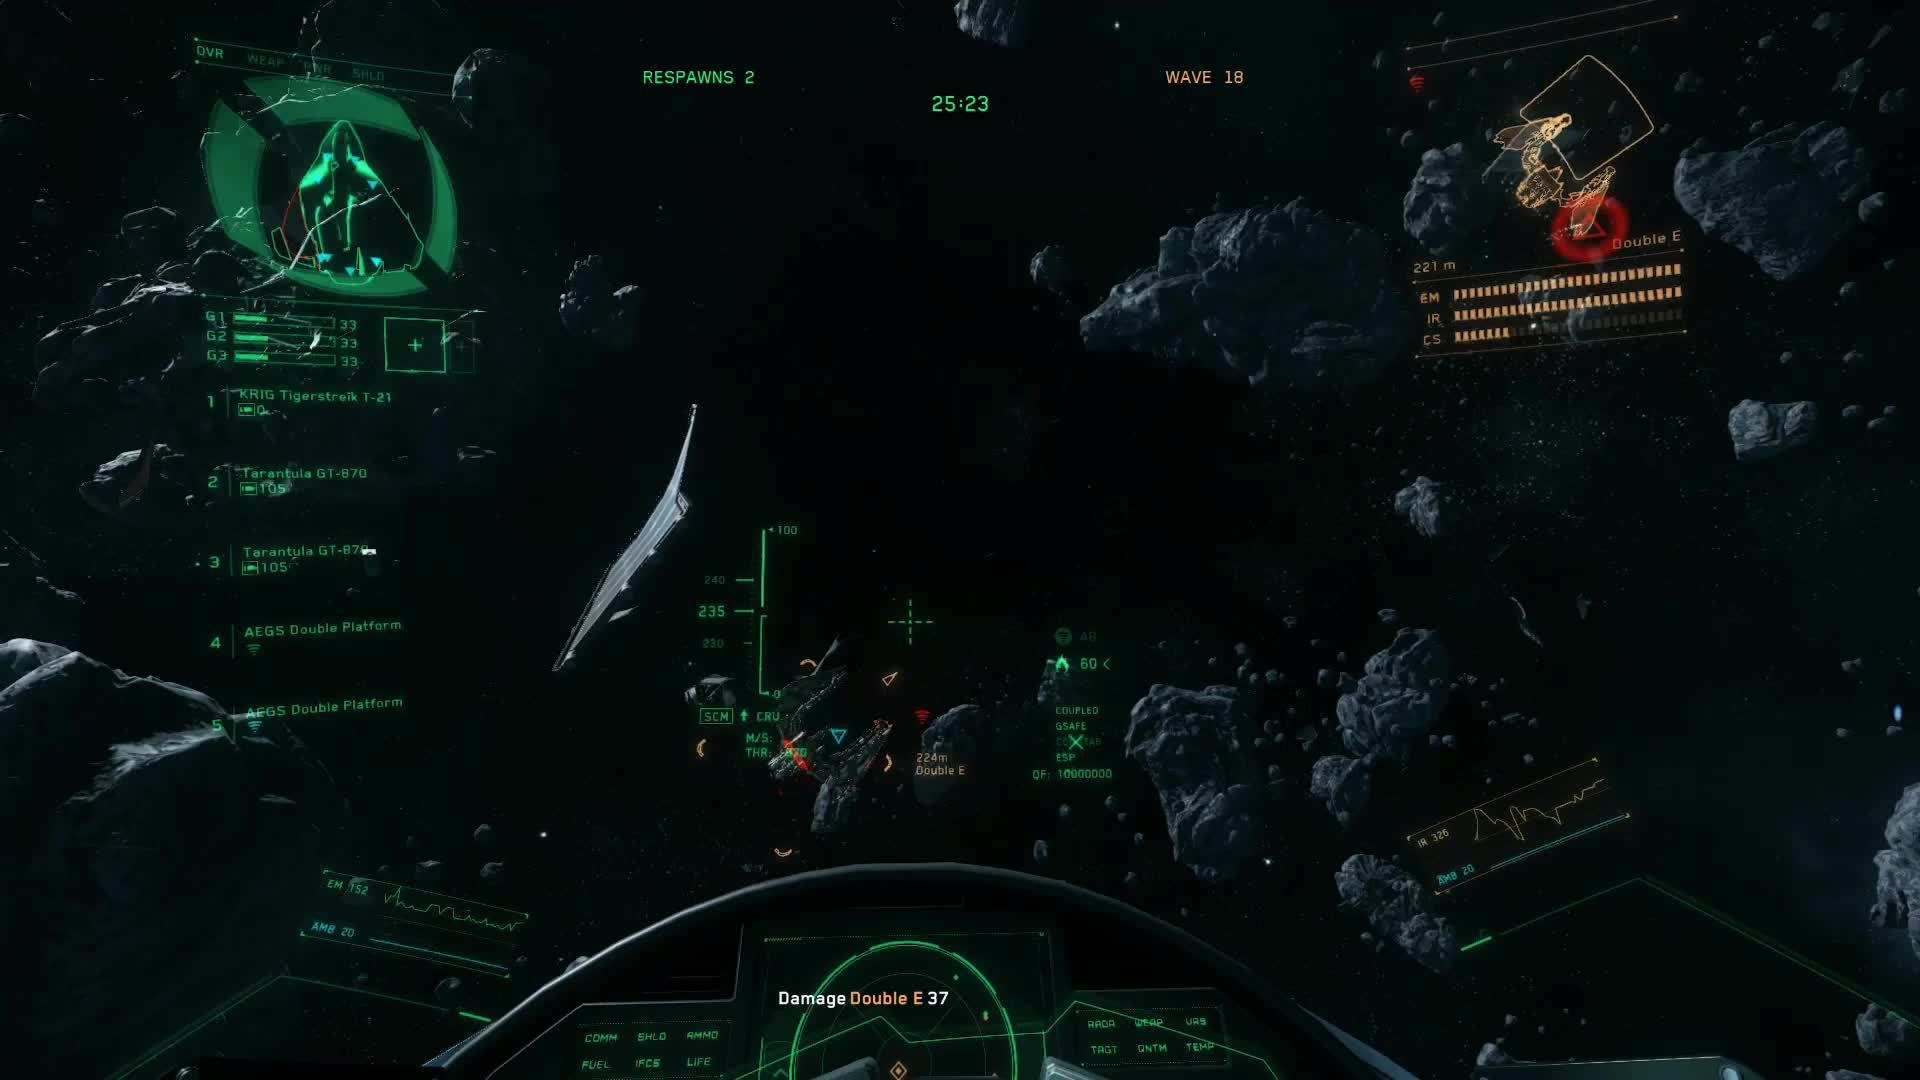 gaming_gifs, spacesimgames, starcitizen, Tight, Close-Quarters Dogfight GIFs